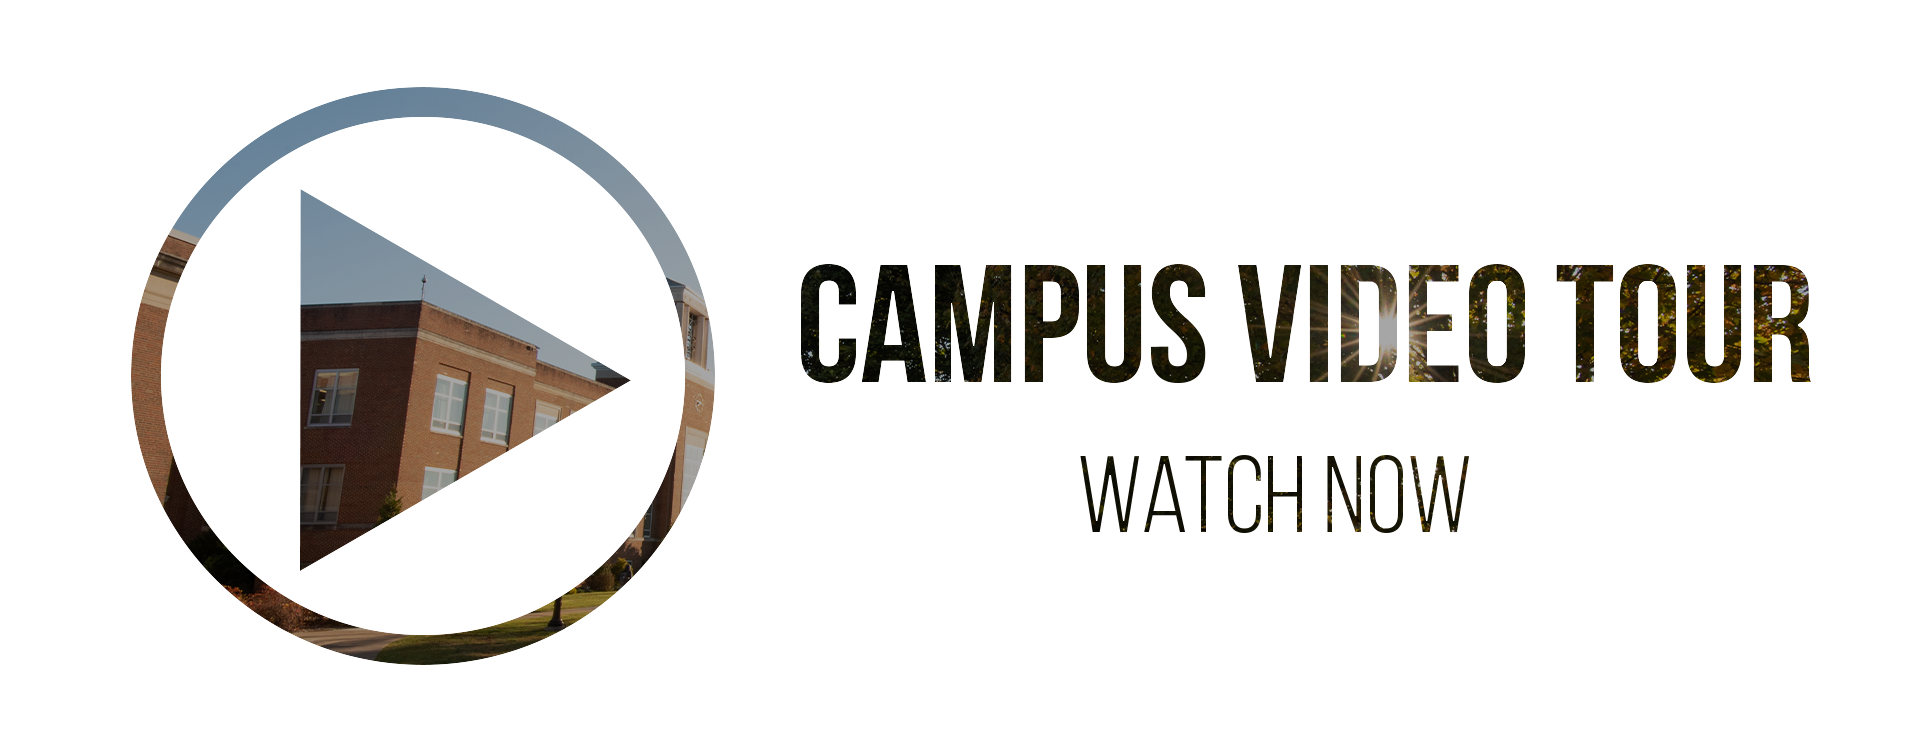 We're offering an alternative way to explore the campus for students interested in attending Concord University. Click here to start!